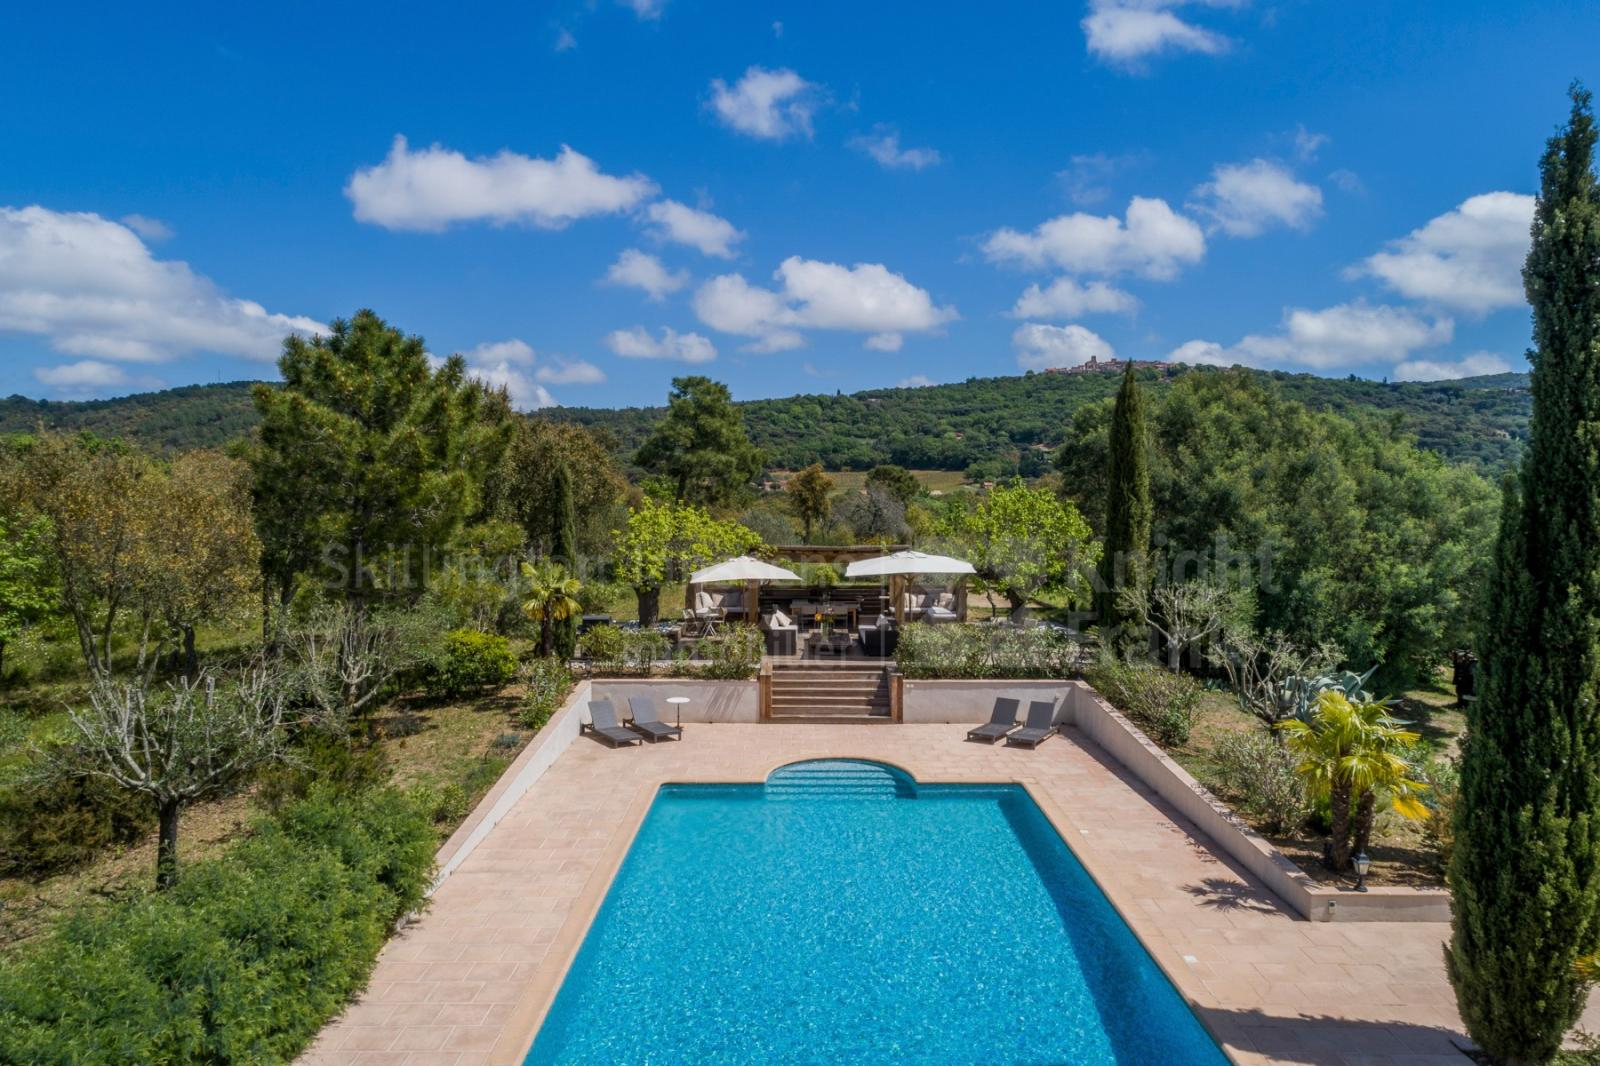 Villa With Pool For Sale In Gassin, Janssens Immobilier Provence concernant Hotel Avec Piscine Ile De France